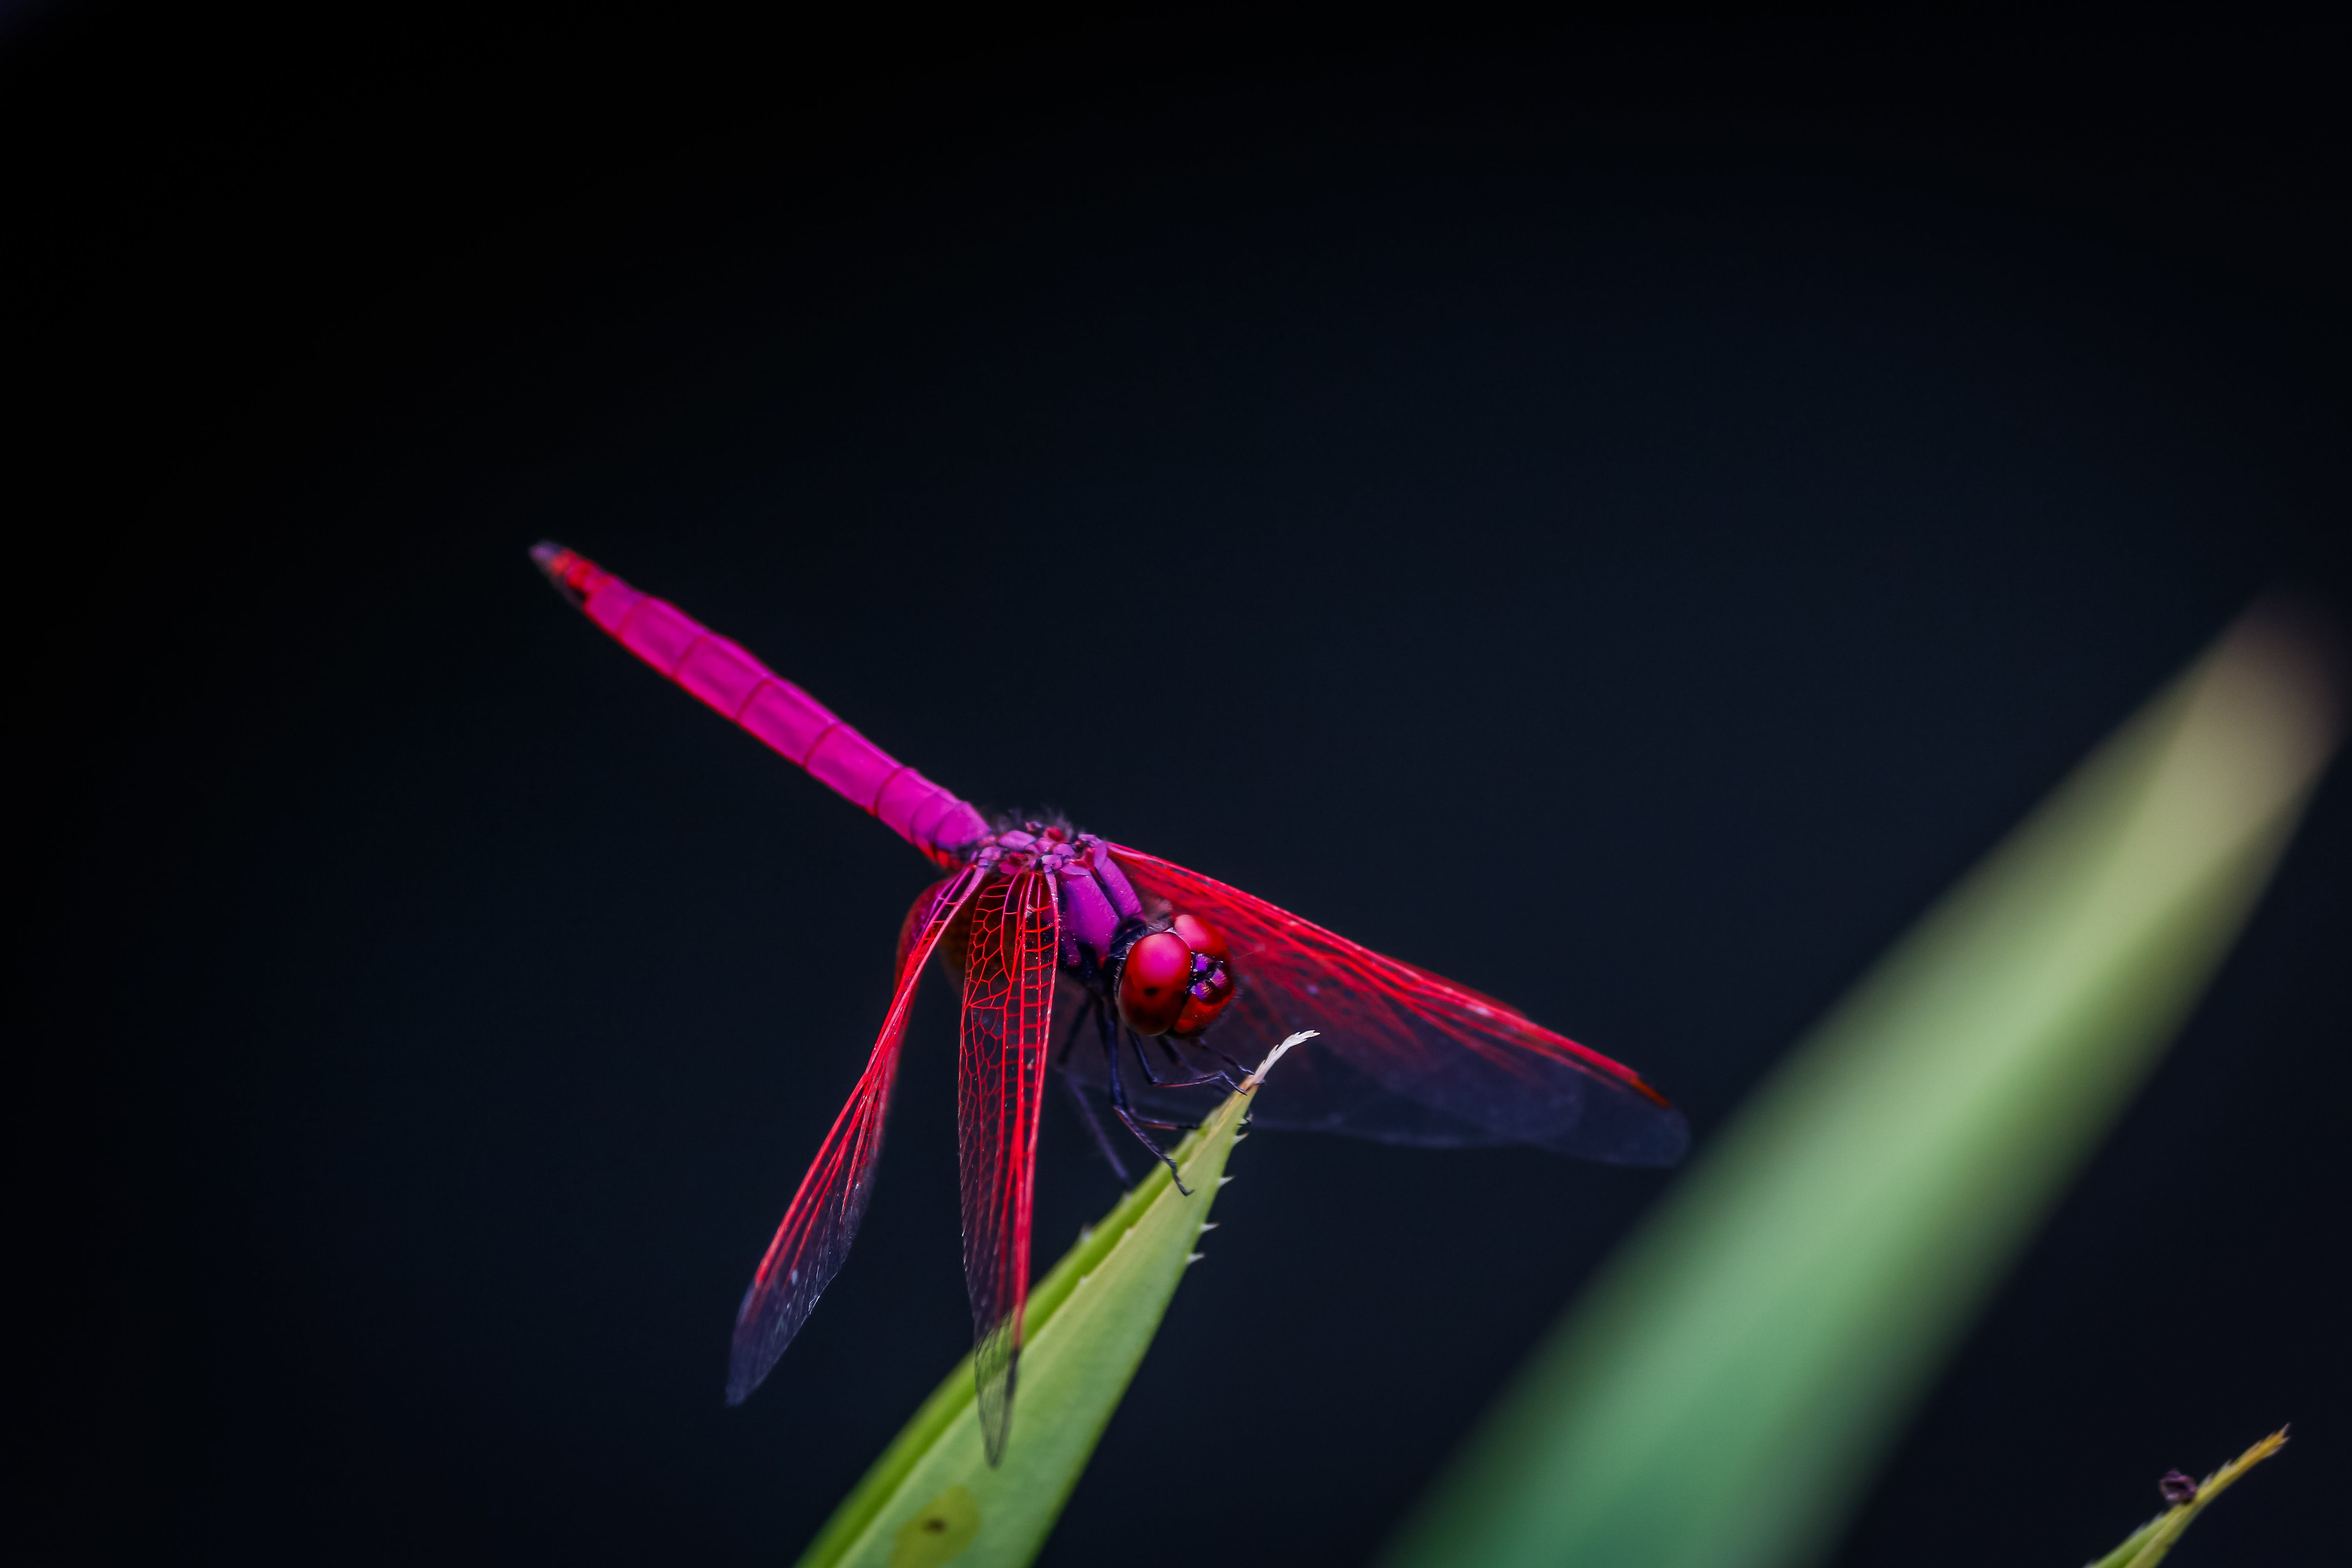 Red Dragonfly Perched on Leaf